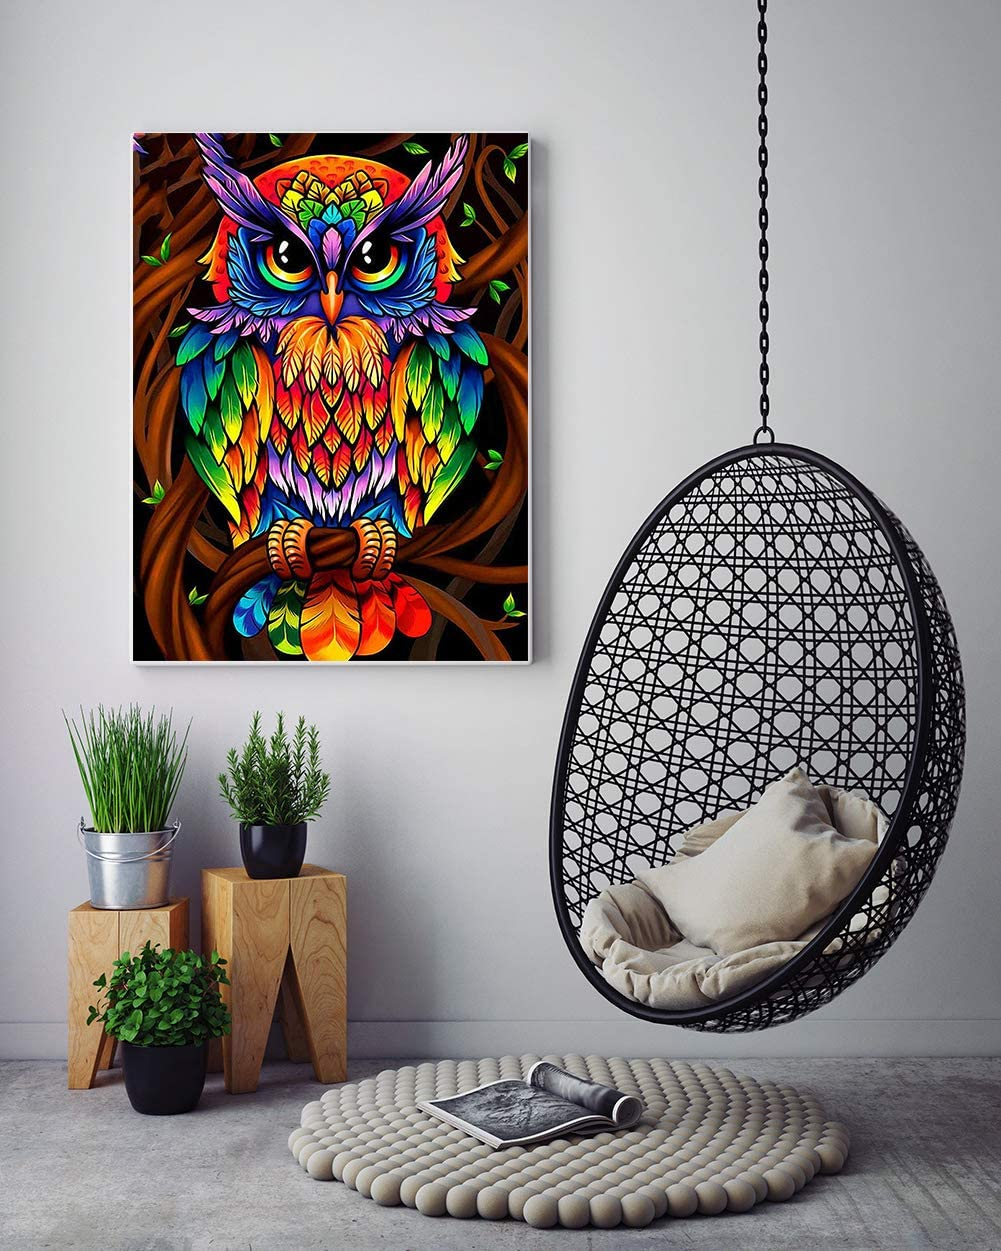 DIY 5D Diamond Painting Kits for Adults Full Drill Embroidery Paintings Rhinestone Pasted DIY Painting Cross Stitch Arts Crafts for Home Wall Decor,Dog(12x12inch)